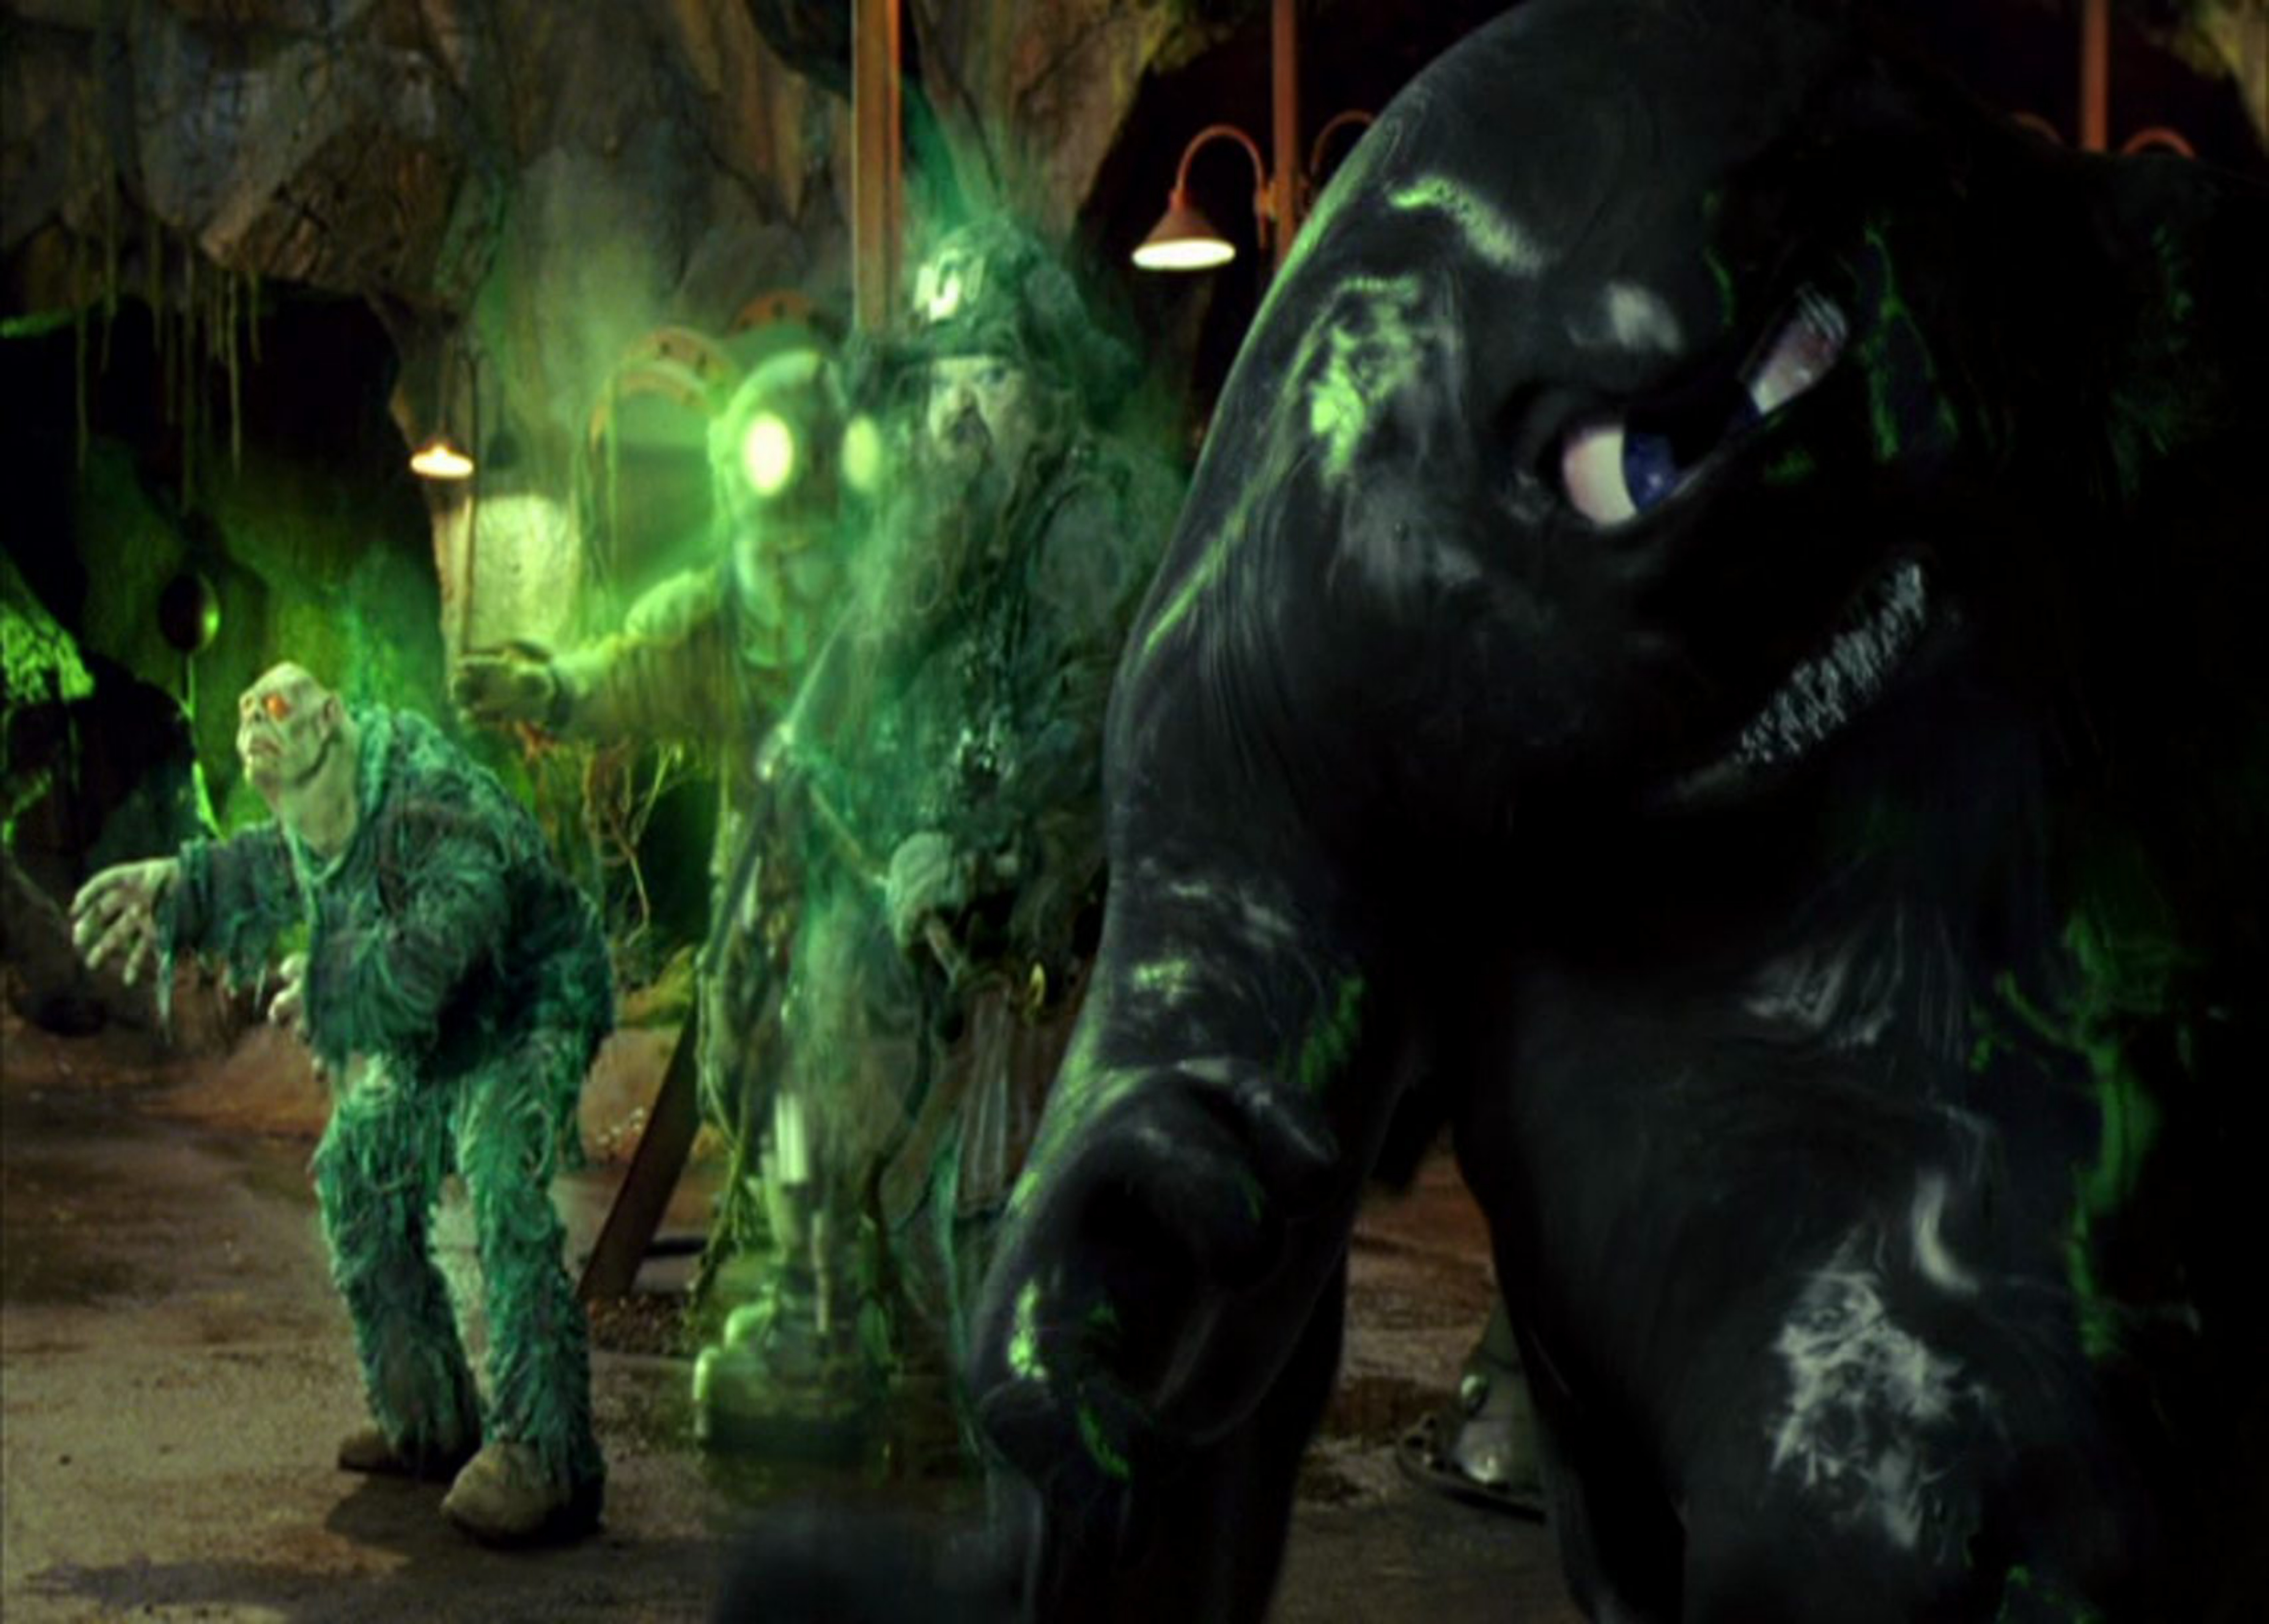 Scooby Doo 2 Monsters Unleashed Scooby Doo 2116600 By Supervilgax2145 On Deviantart